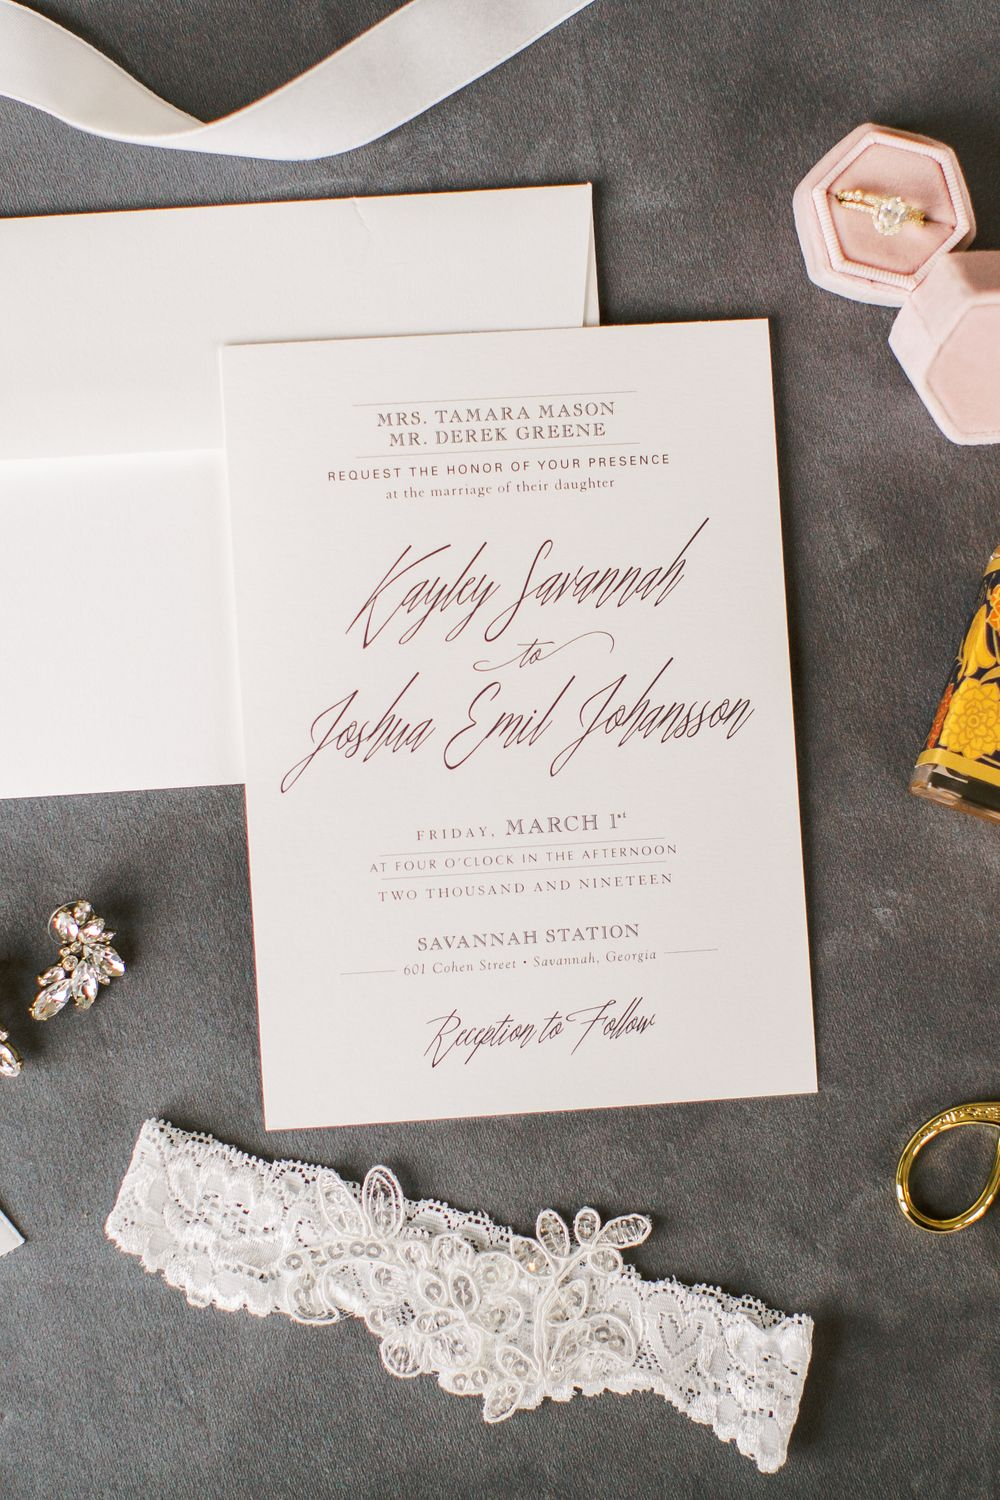 minted wedding invitations styled at the homewood suites in downtown savannah, ga